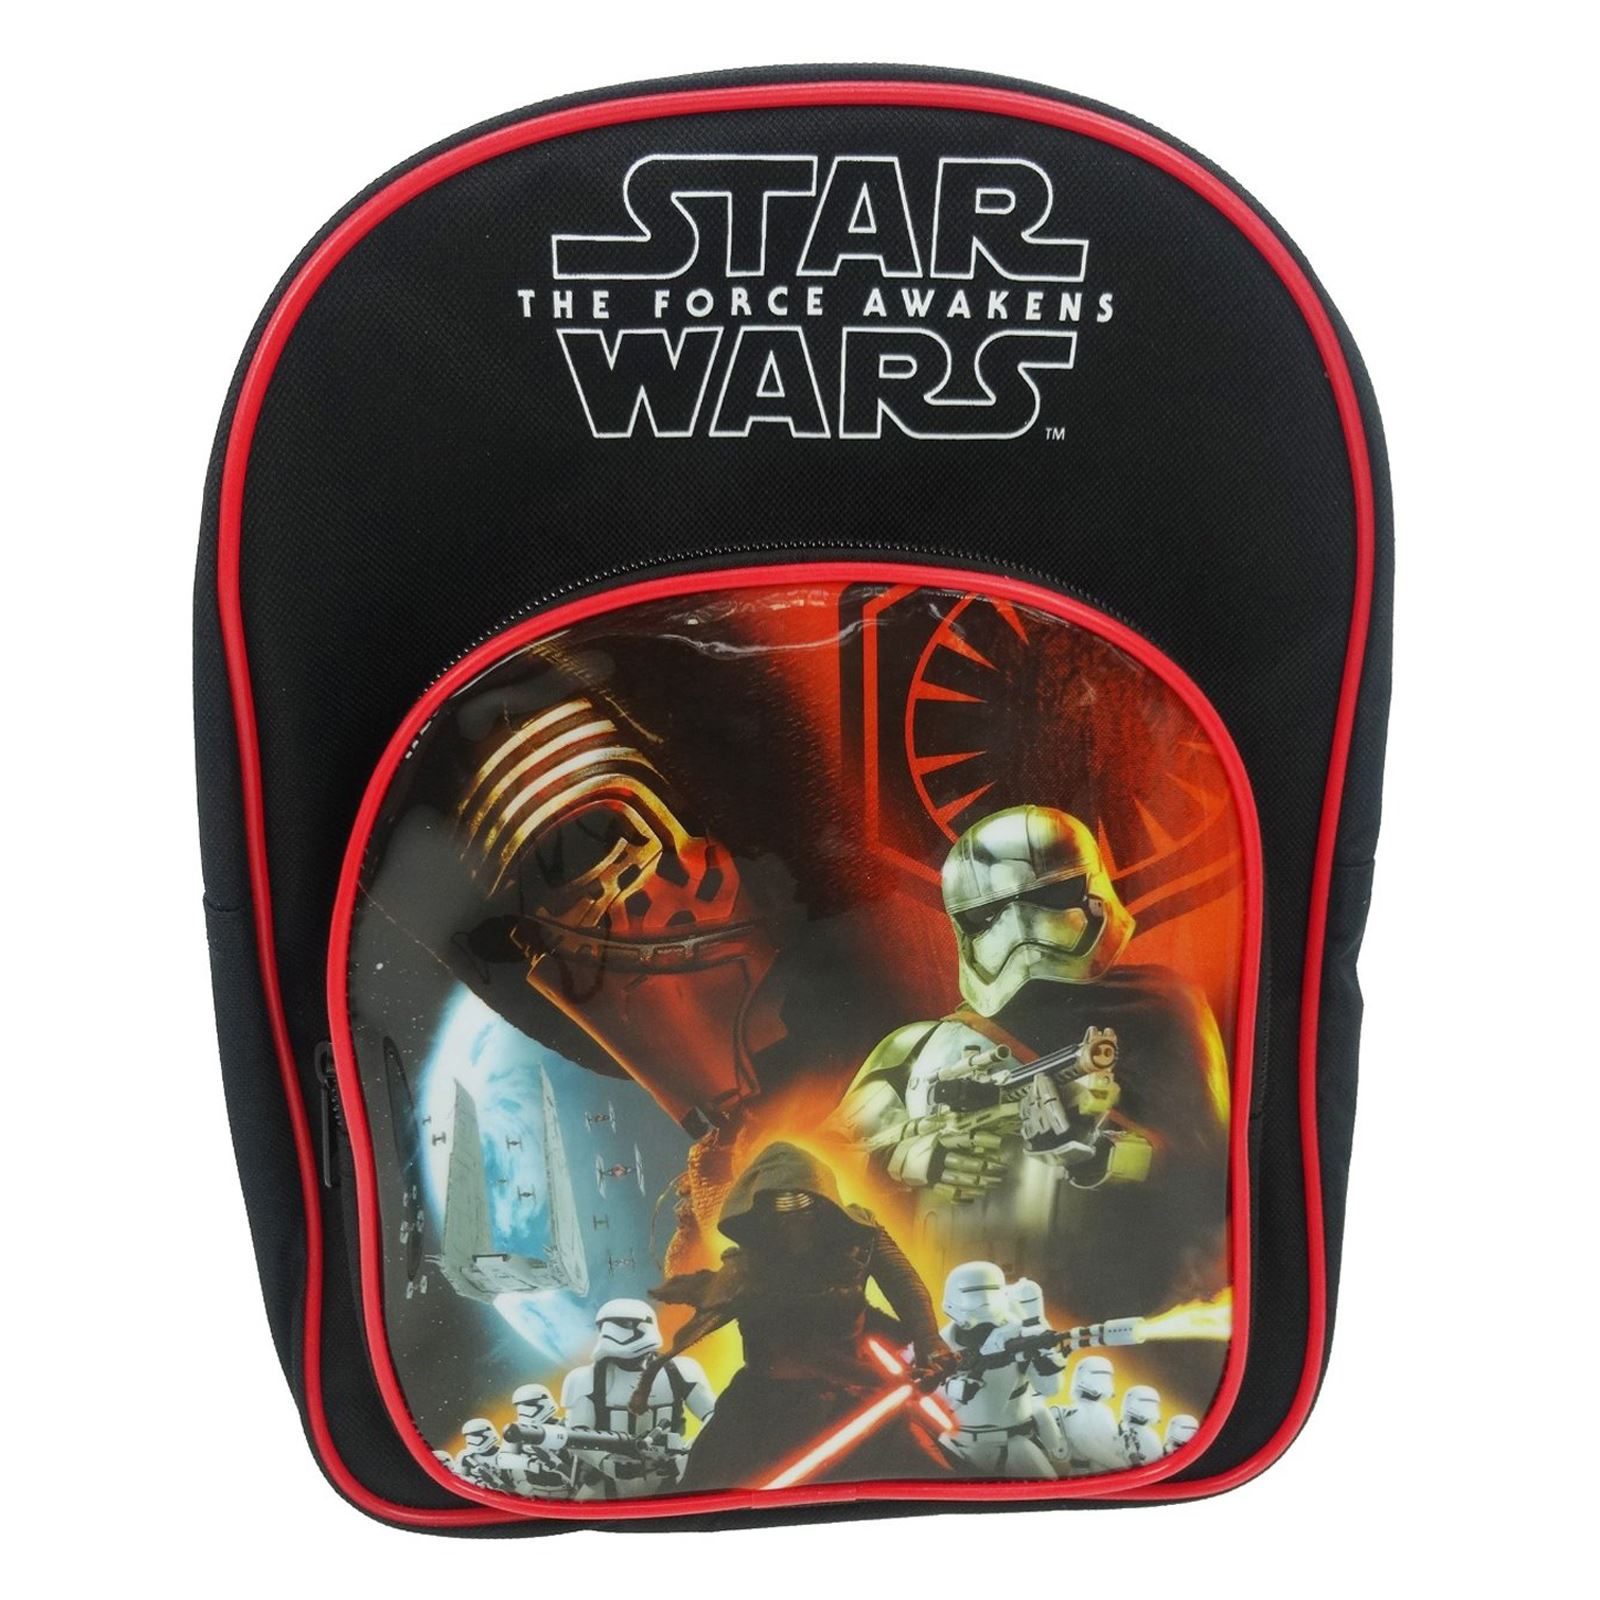 star wars kraft erwacht rucksack tasche neu kinder schule ebay. Black Bedroom Furniture Sets. Home Design Ideas